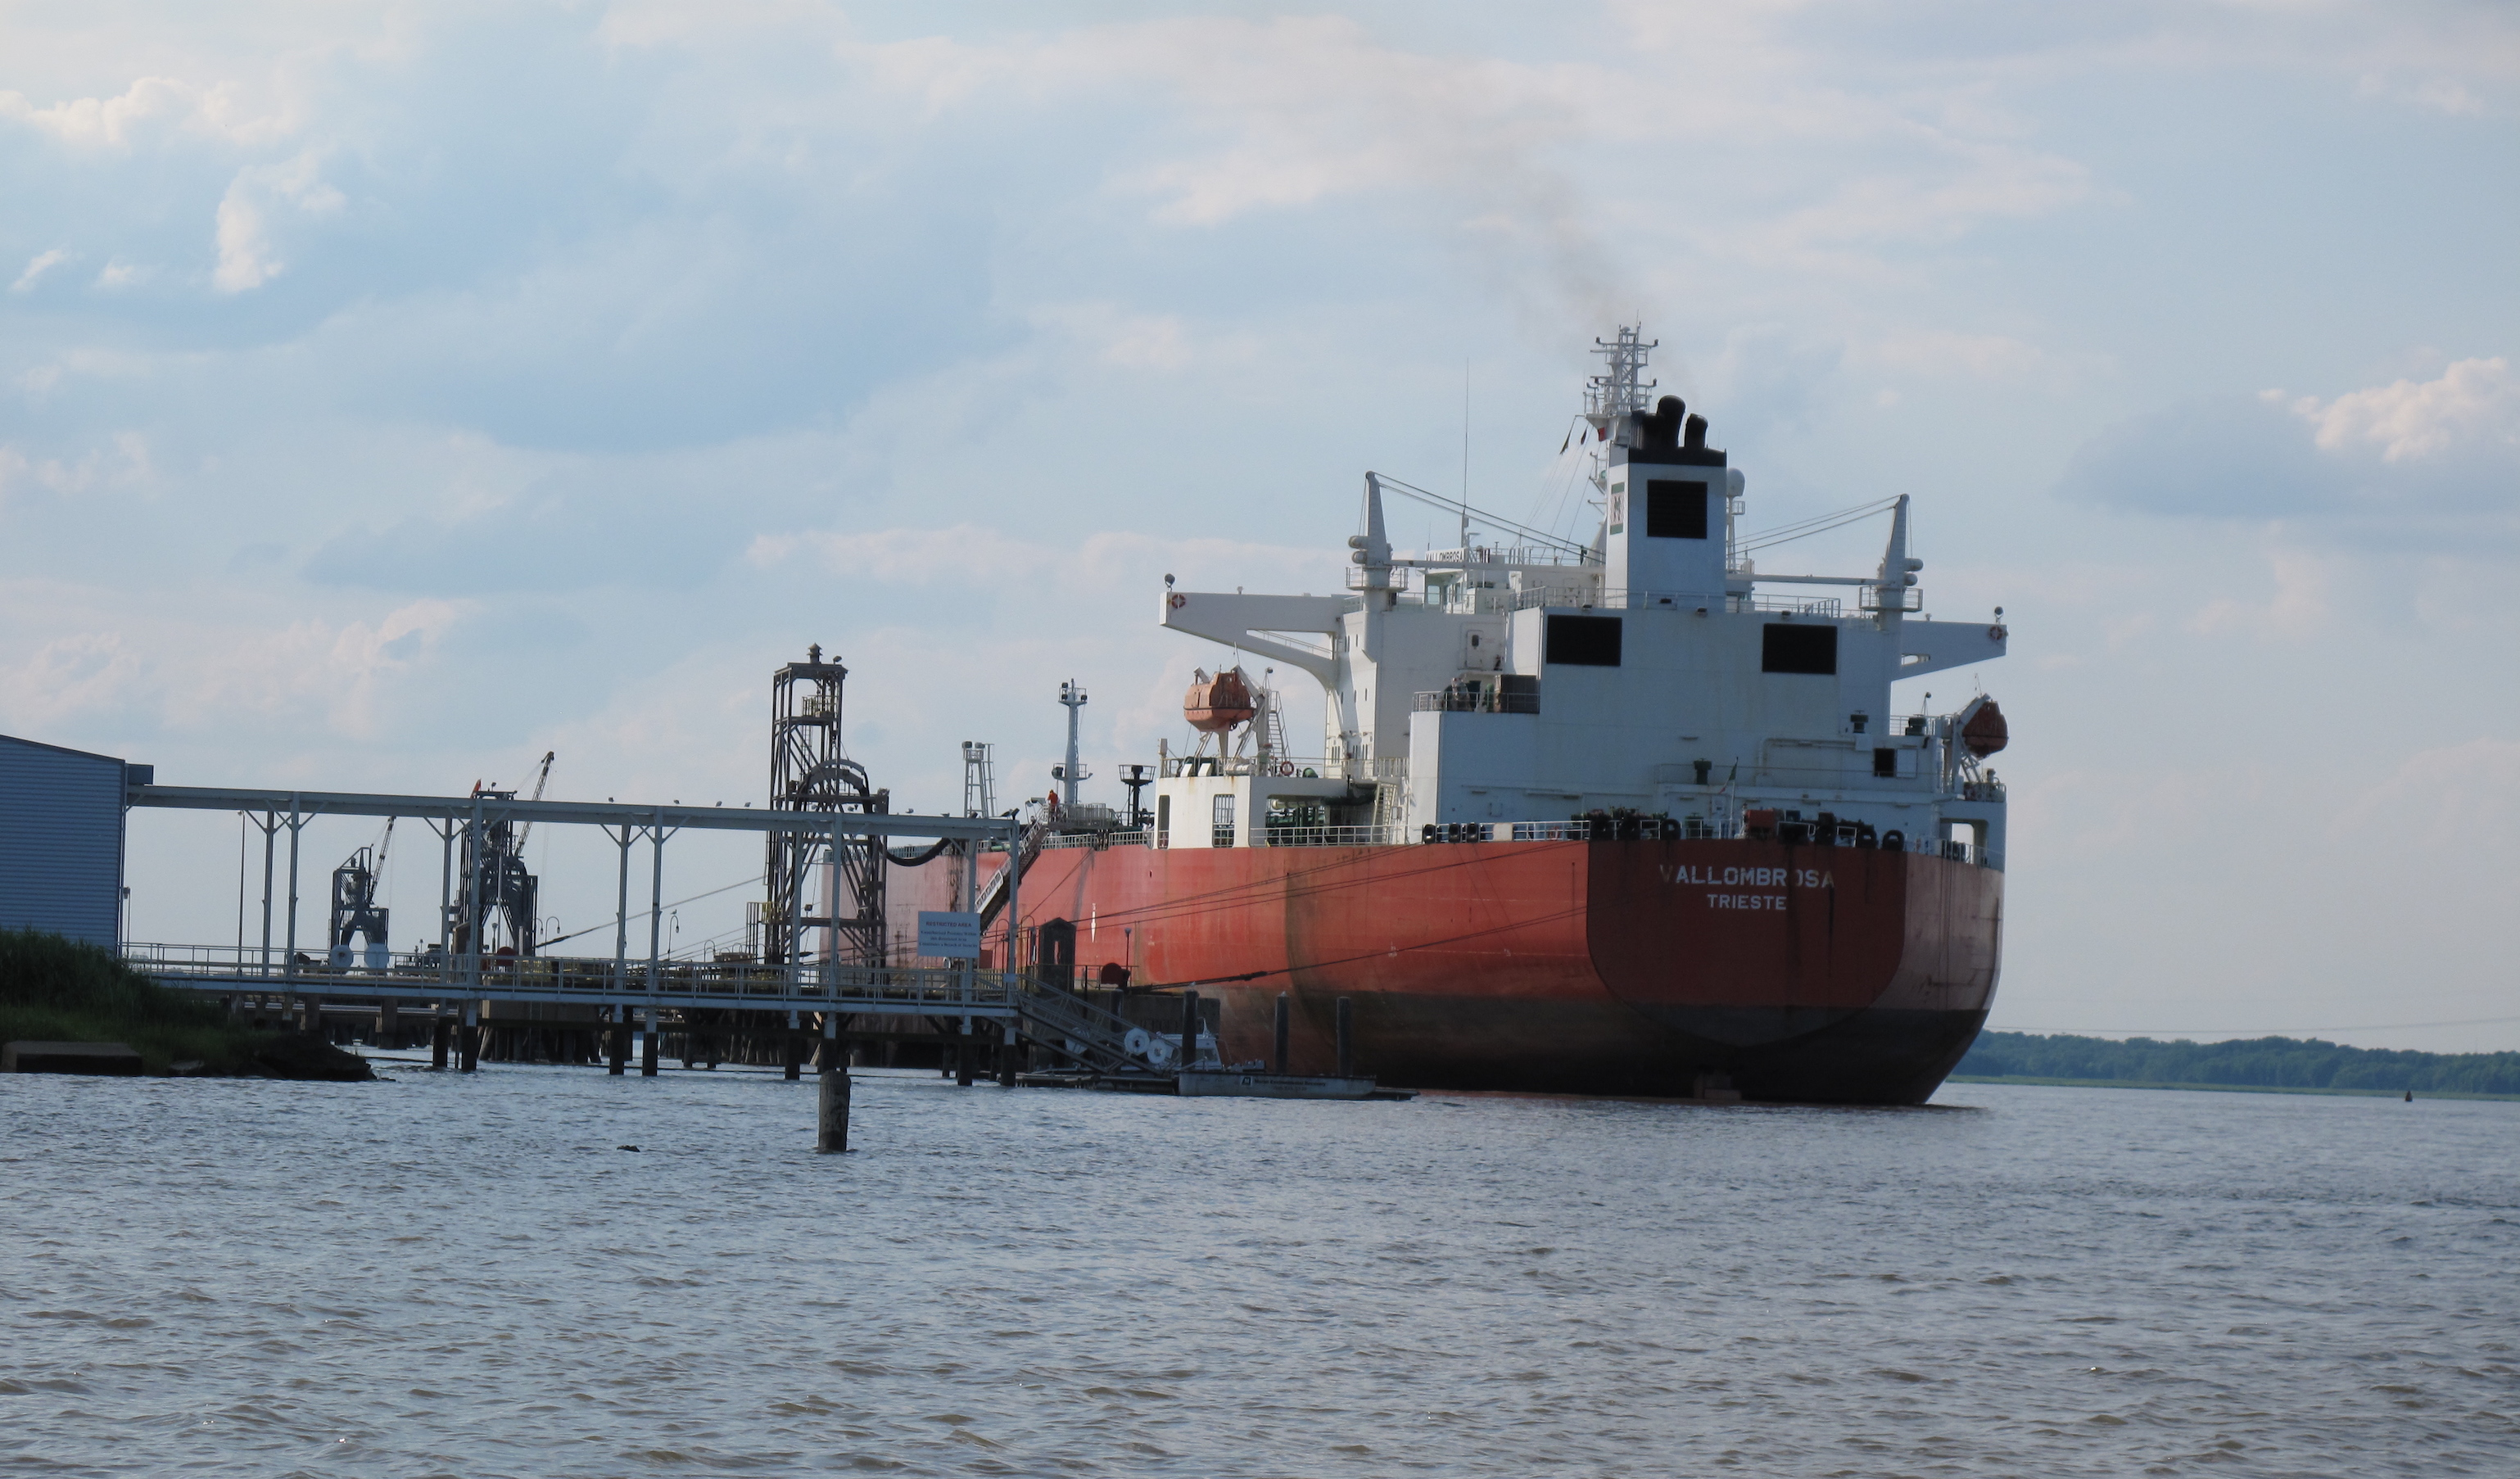 A new regulation on shipping fuel now requires that all marine fuels contain 80 to 86 percent less sulfur by 2020.